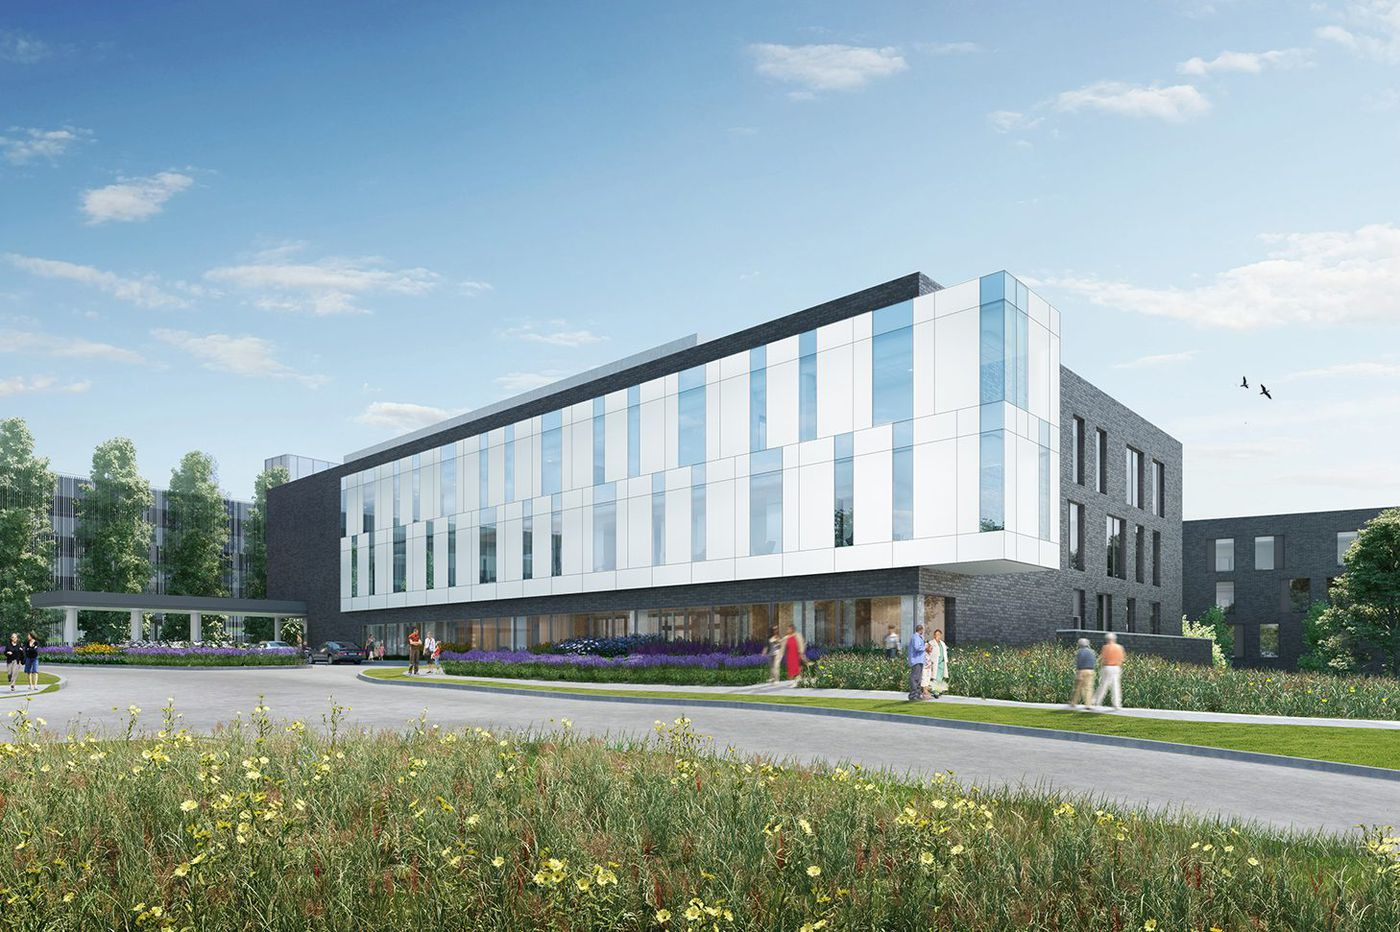 Penn breaks ground on $200M outpatient center in Radnor